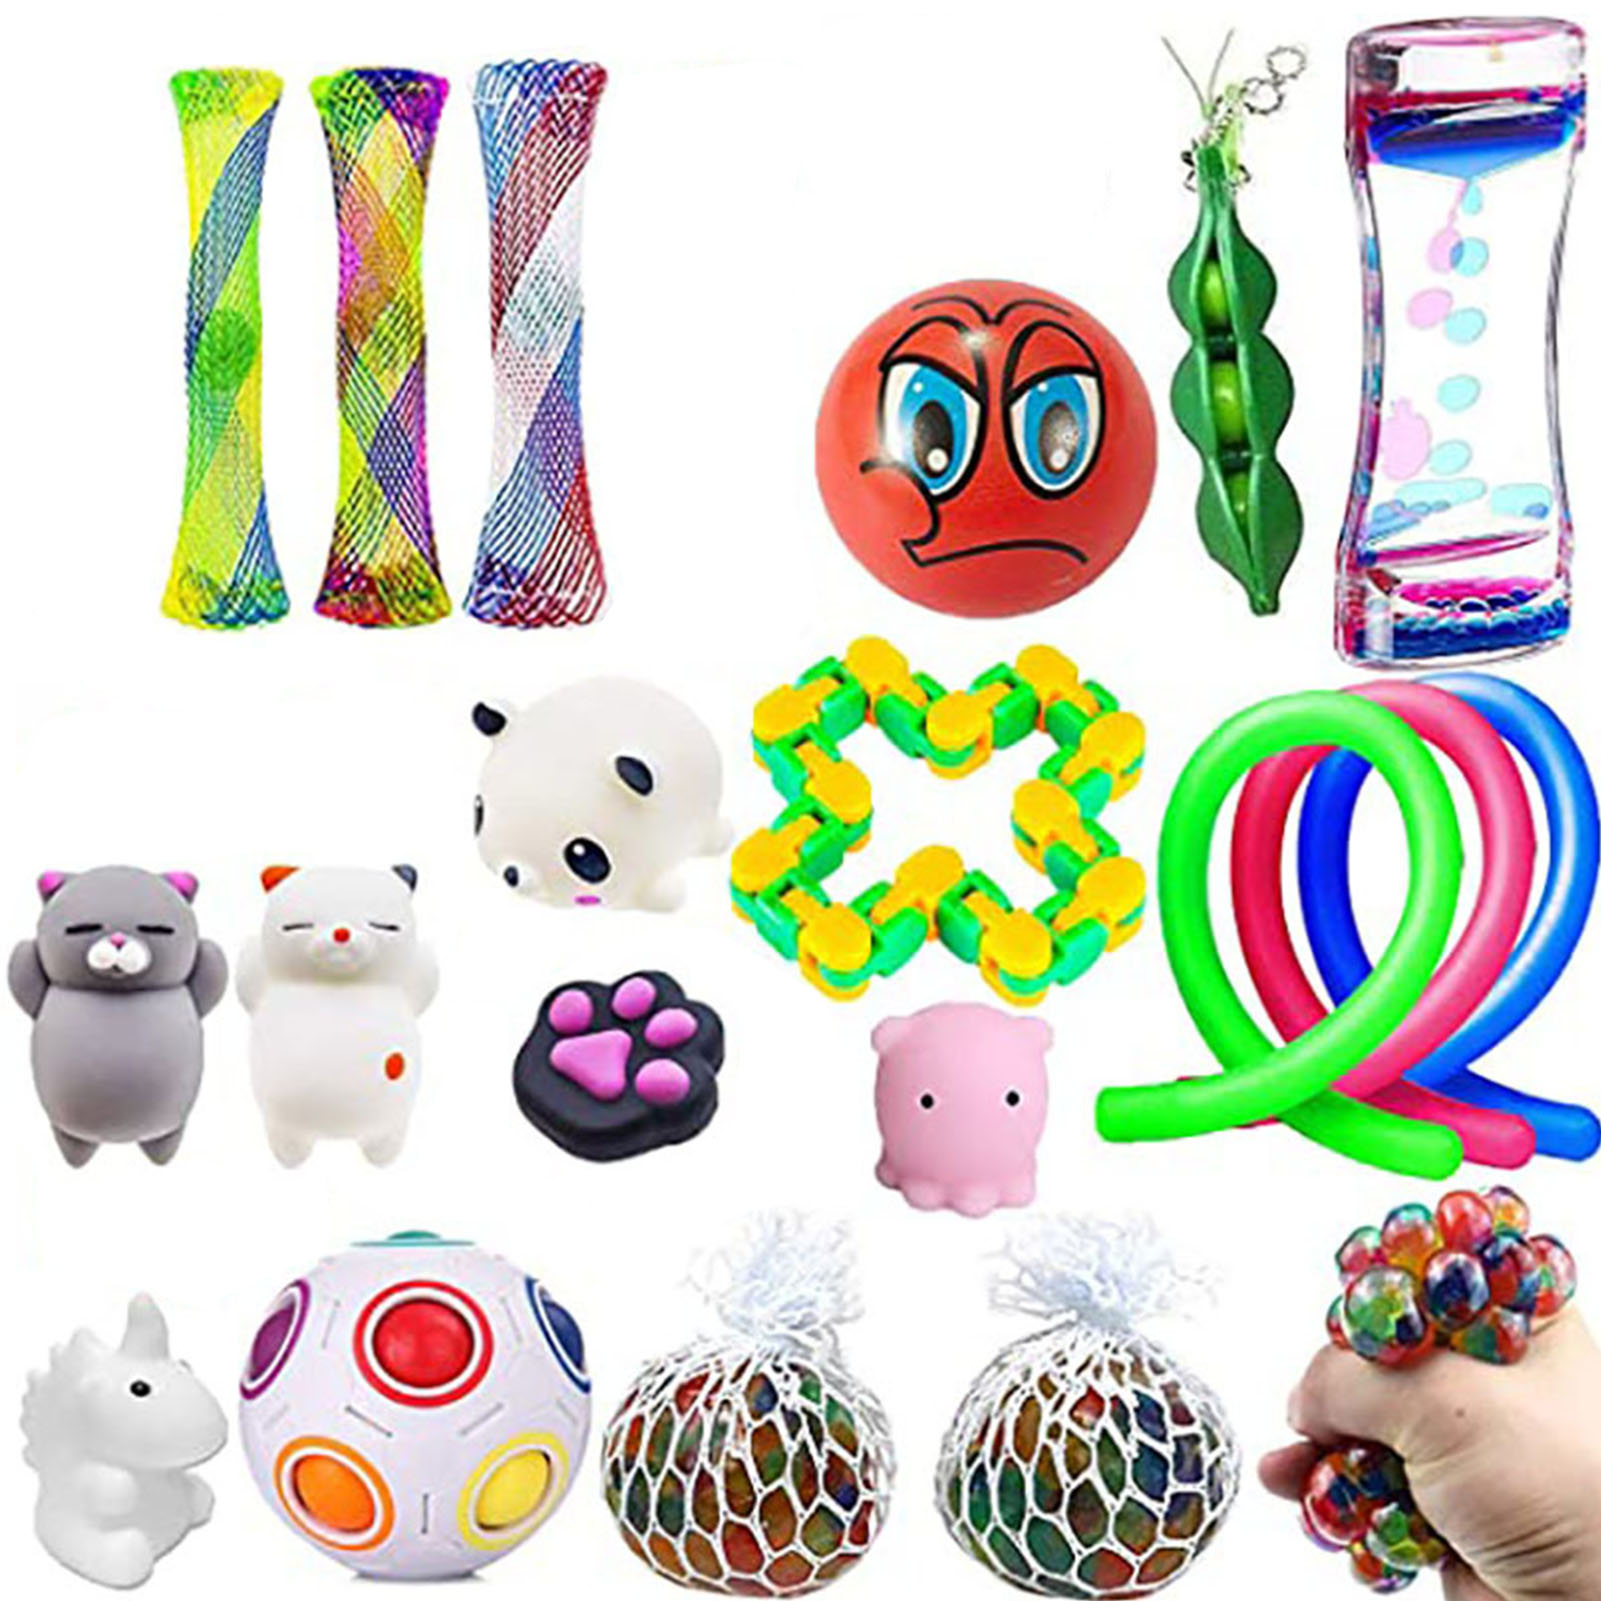 1 Pack Fidget Sensory Toy Set Stress Relief Toys Autism Anxiety Relief Stress Pop Bubble Fidget Sensory Toy For Kids Adults enlarge